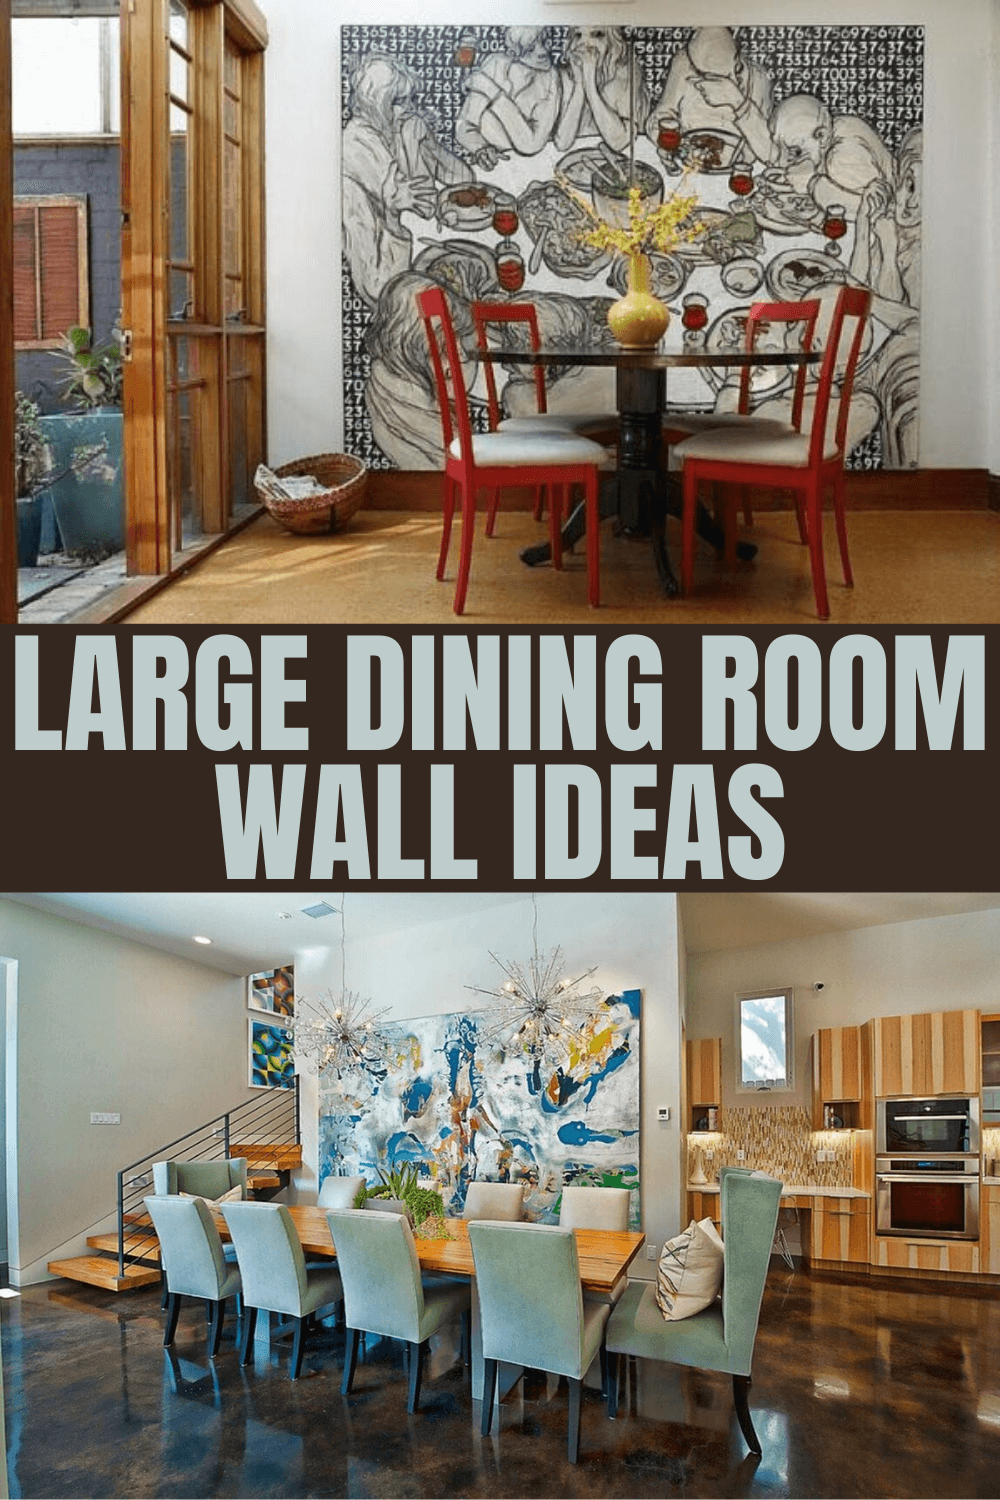 LARGE DINING ROOM WALL IDEAS